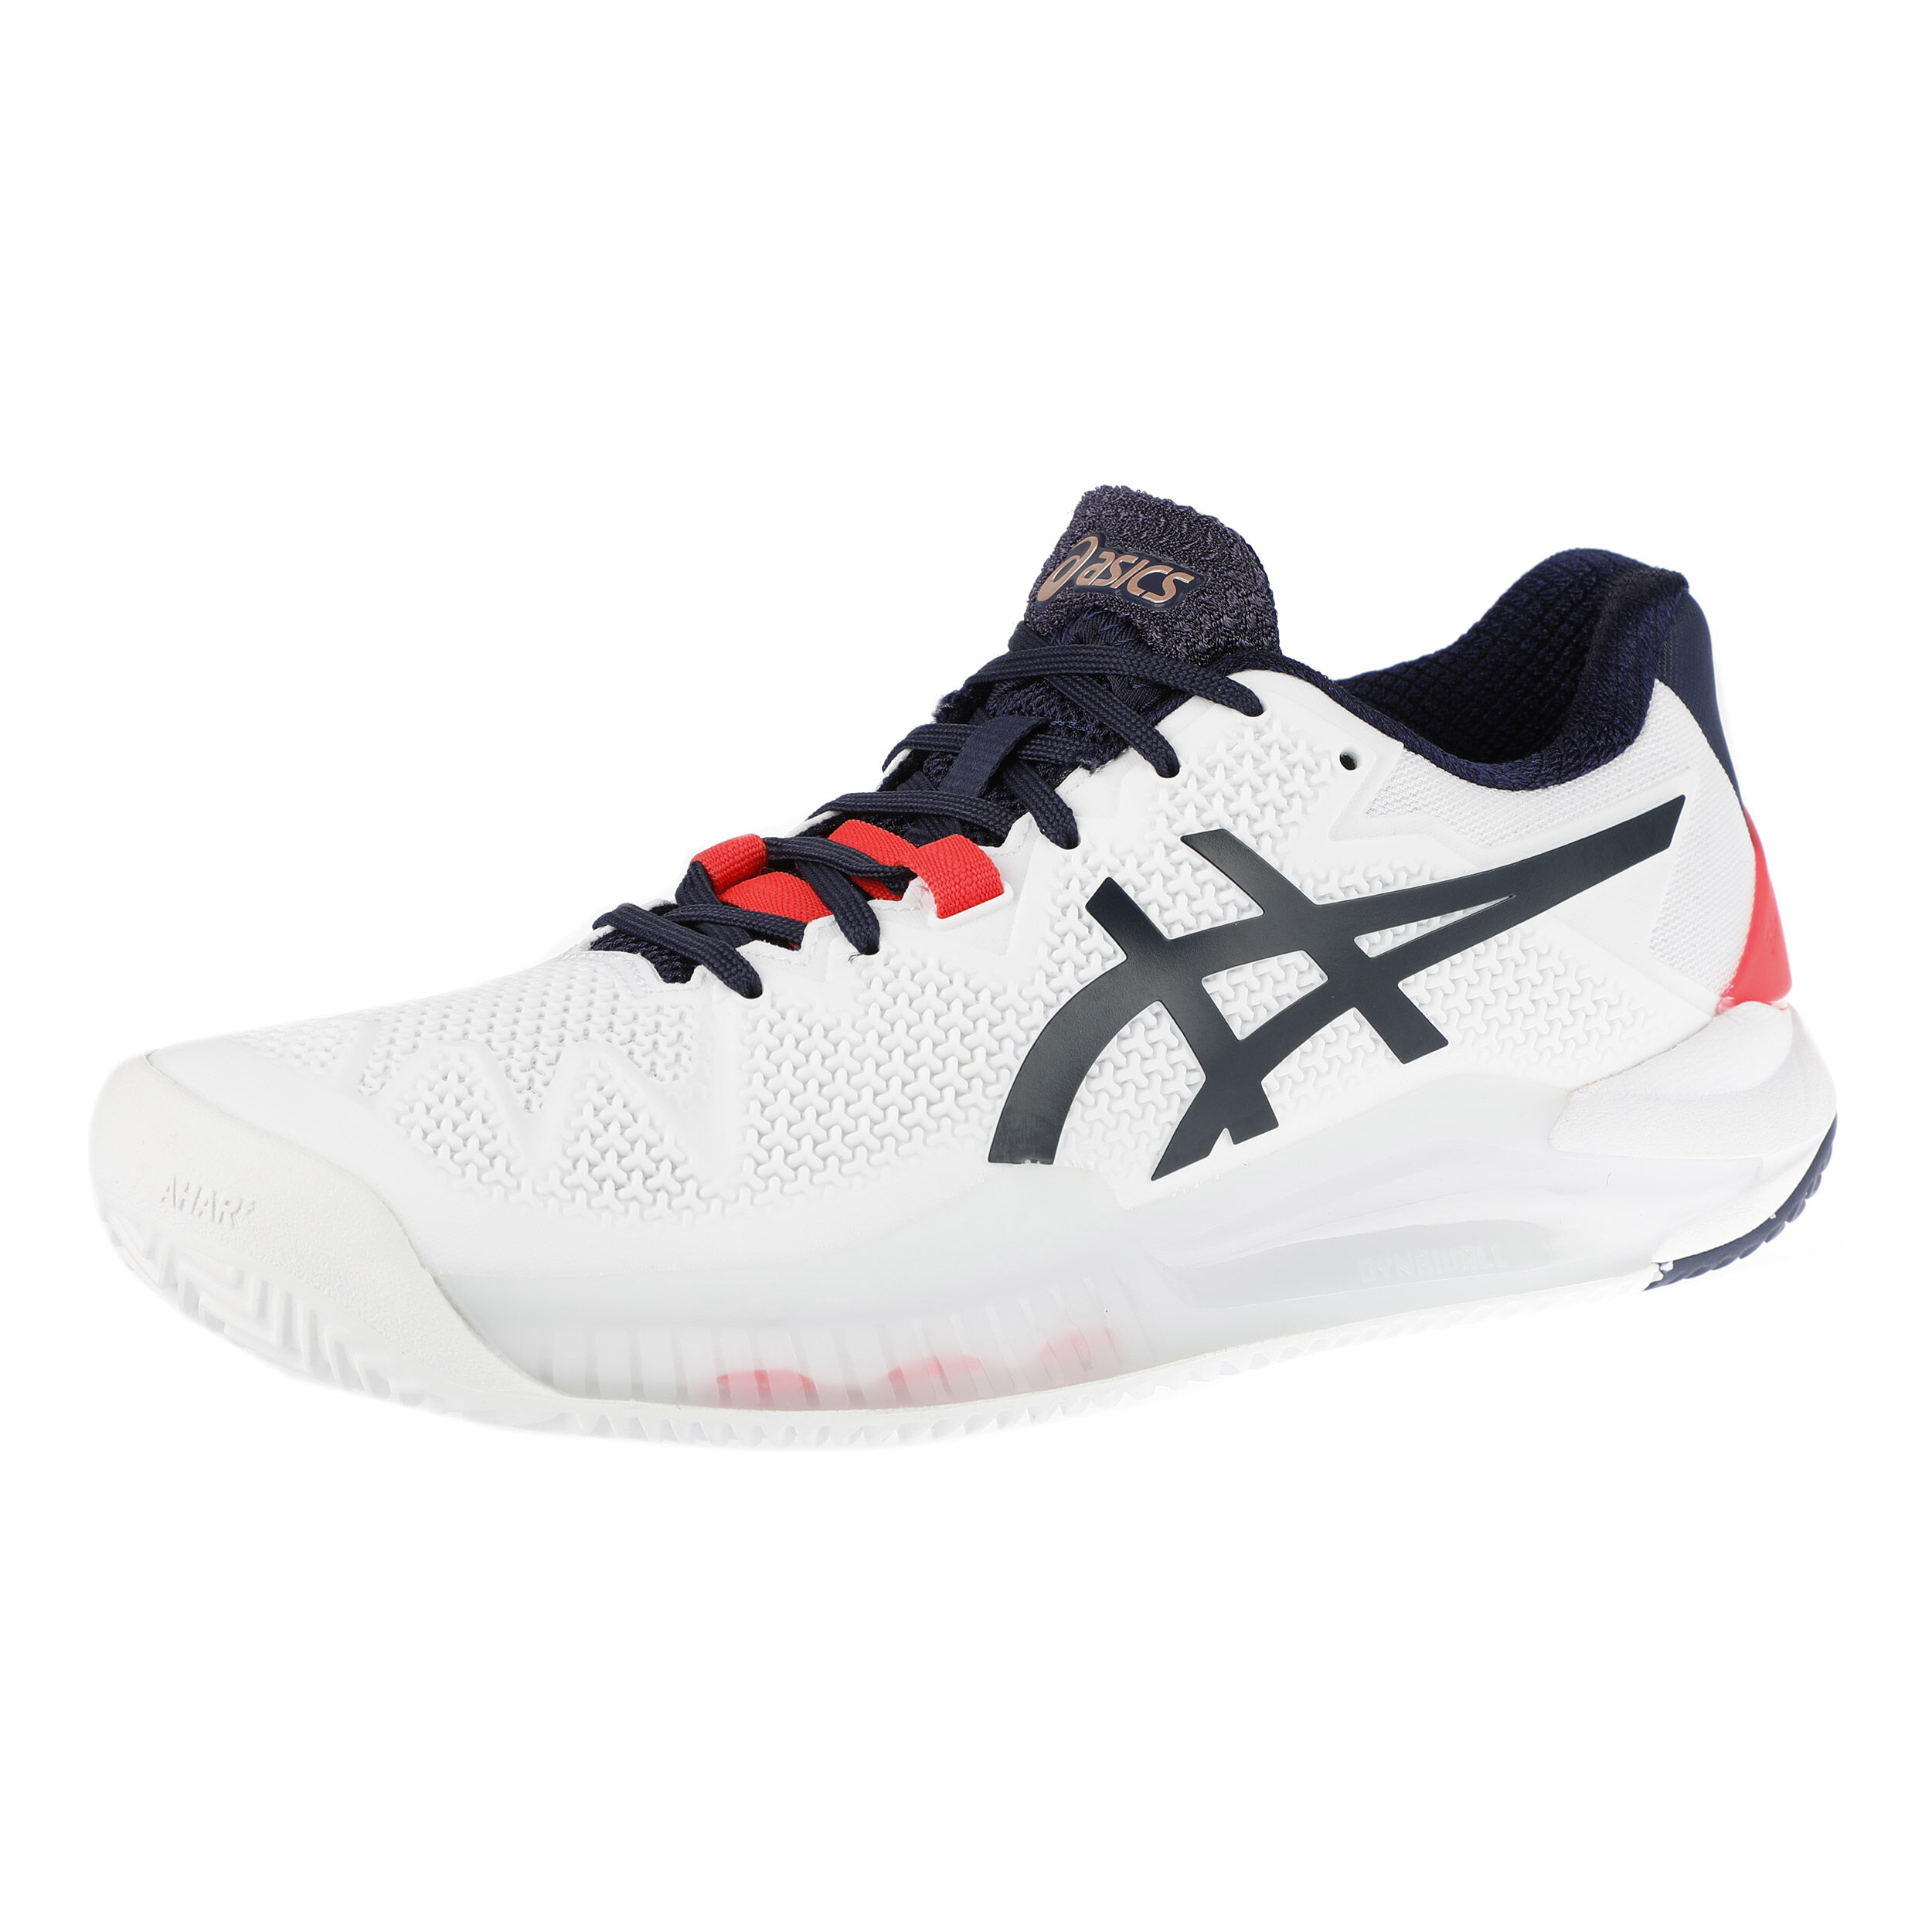 Asics Gel-Resolution 8 Clay Sandplatzschuh Damen - Weiß ...